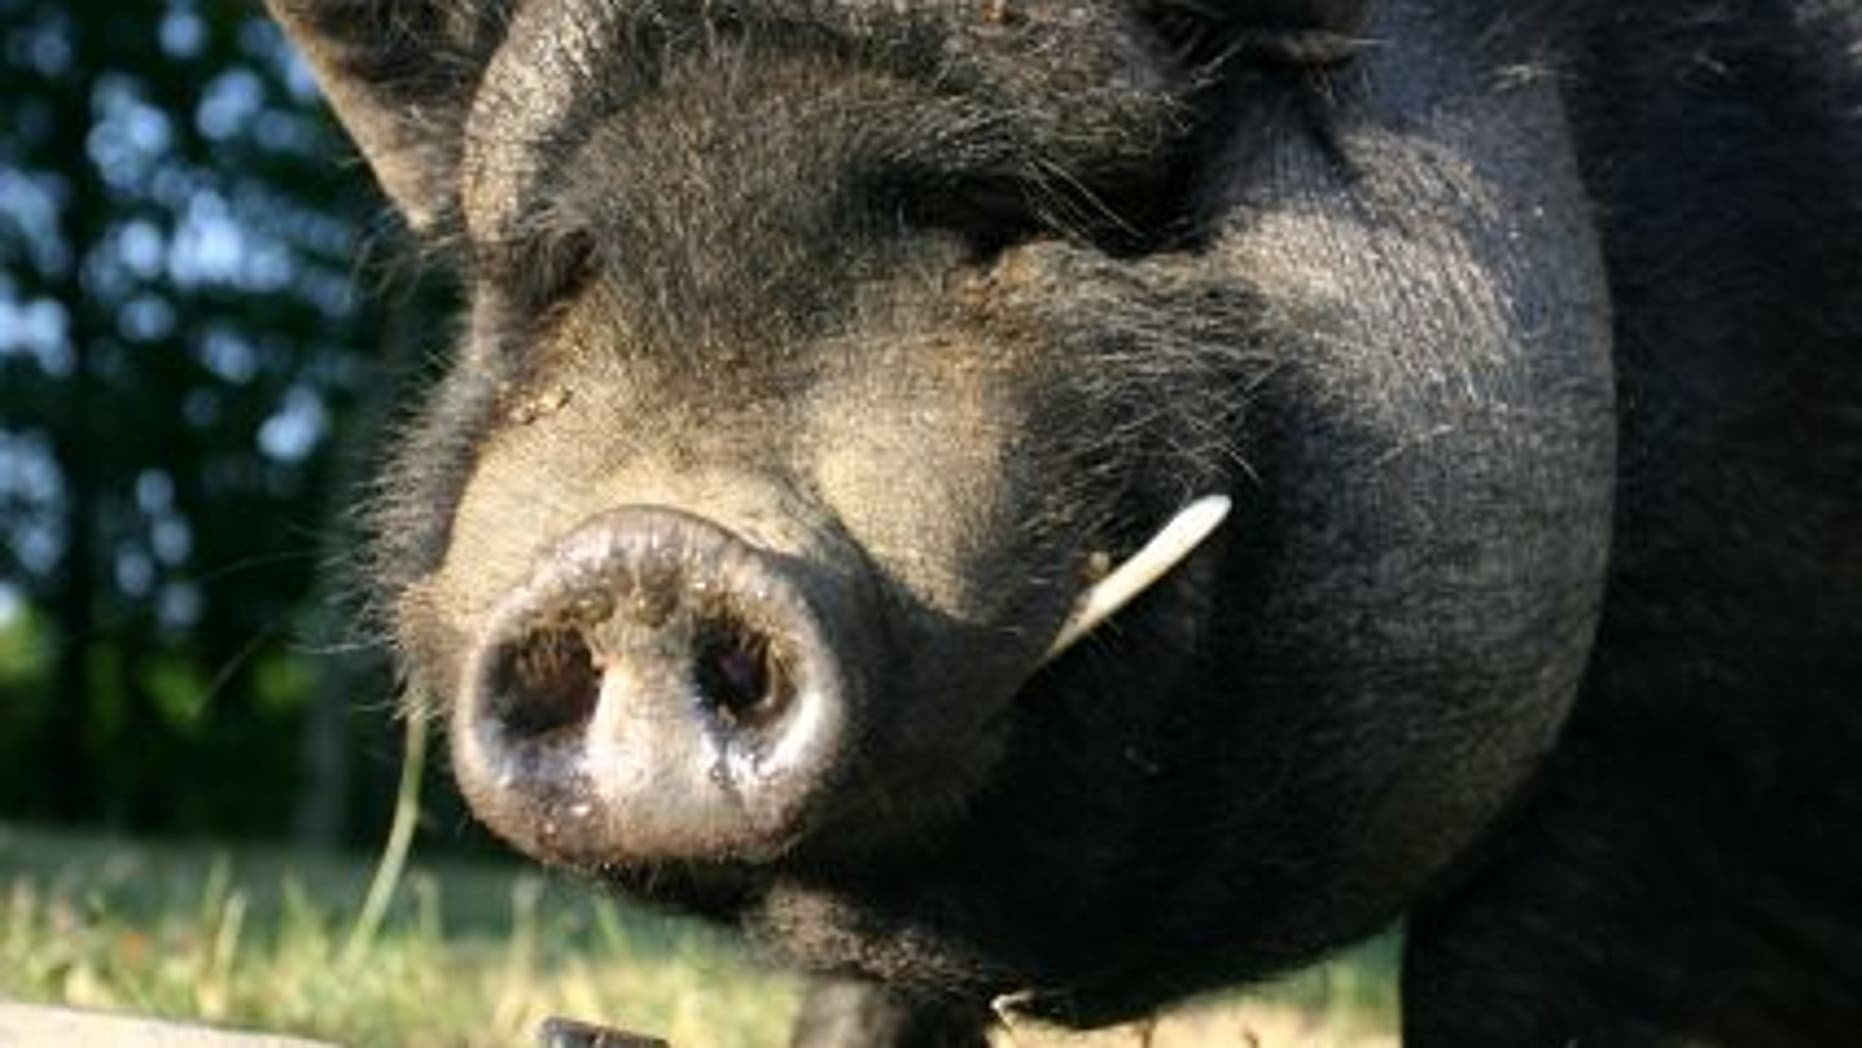 New air travel rules could mean that pot-bellied pigs, miniature horses and monkeys could all be allowed to travel on planes as service animals.